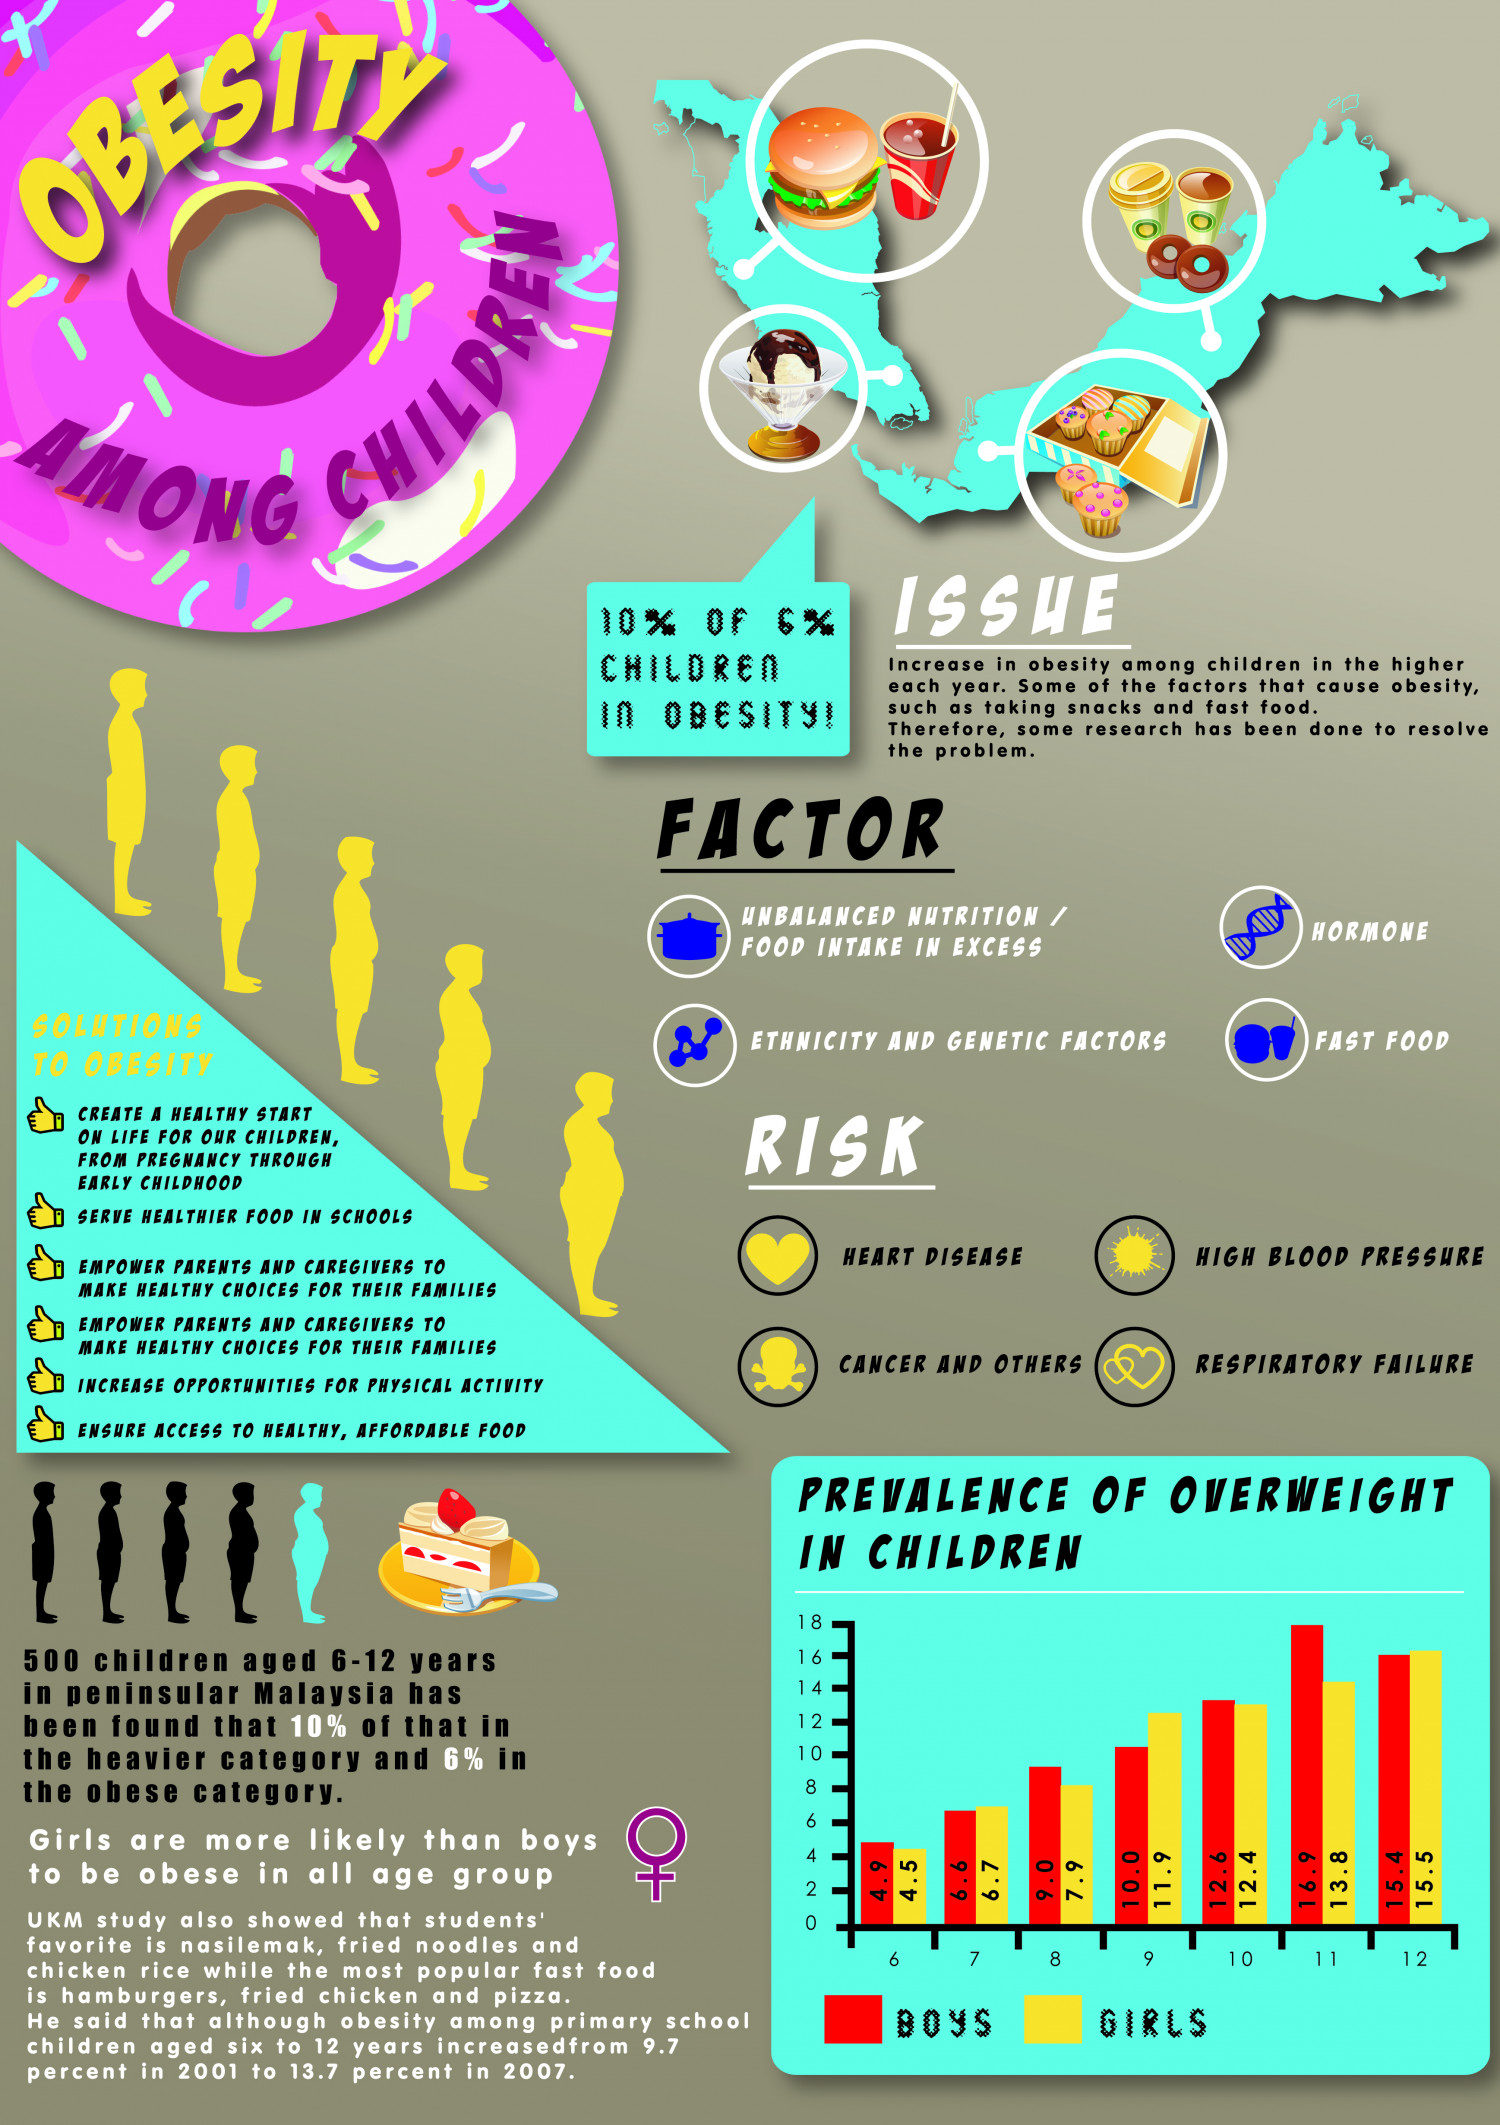 THE ISSUE OF CHILD OBESITY Infographic